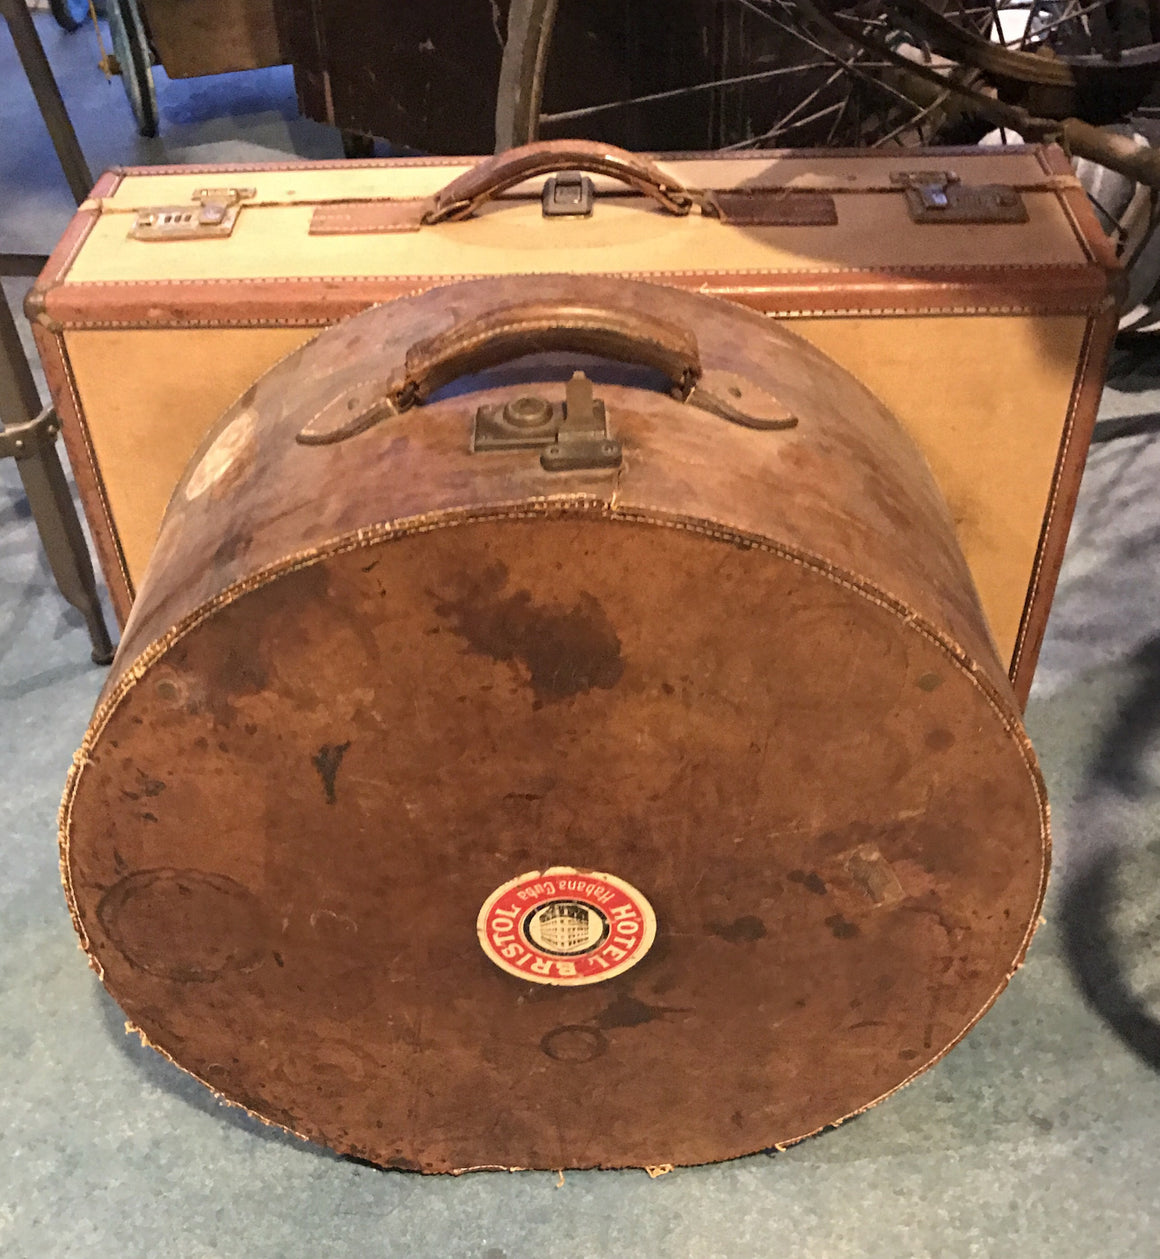 Vintage Leather Hat Suitcase - VINTAGE JOURNEY MARKET - Upcycling & Restoration